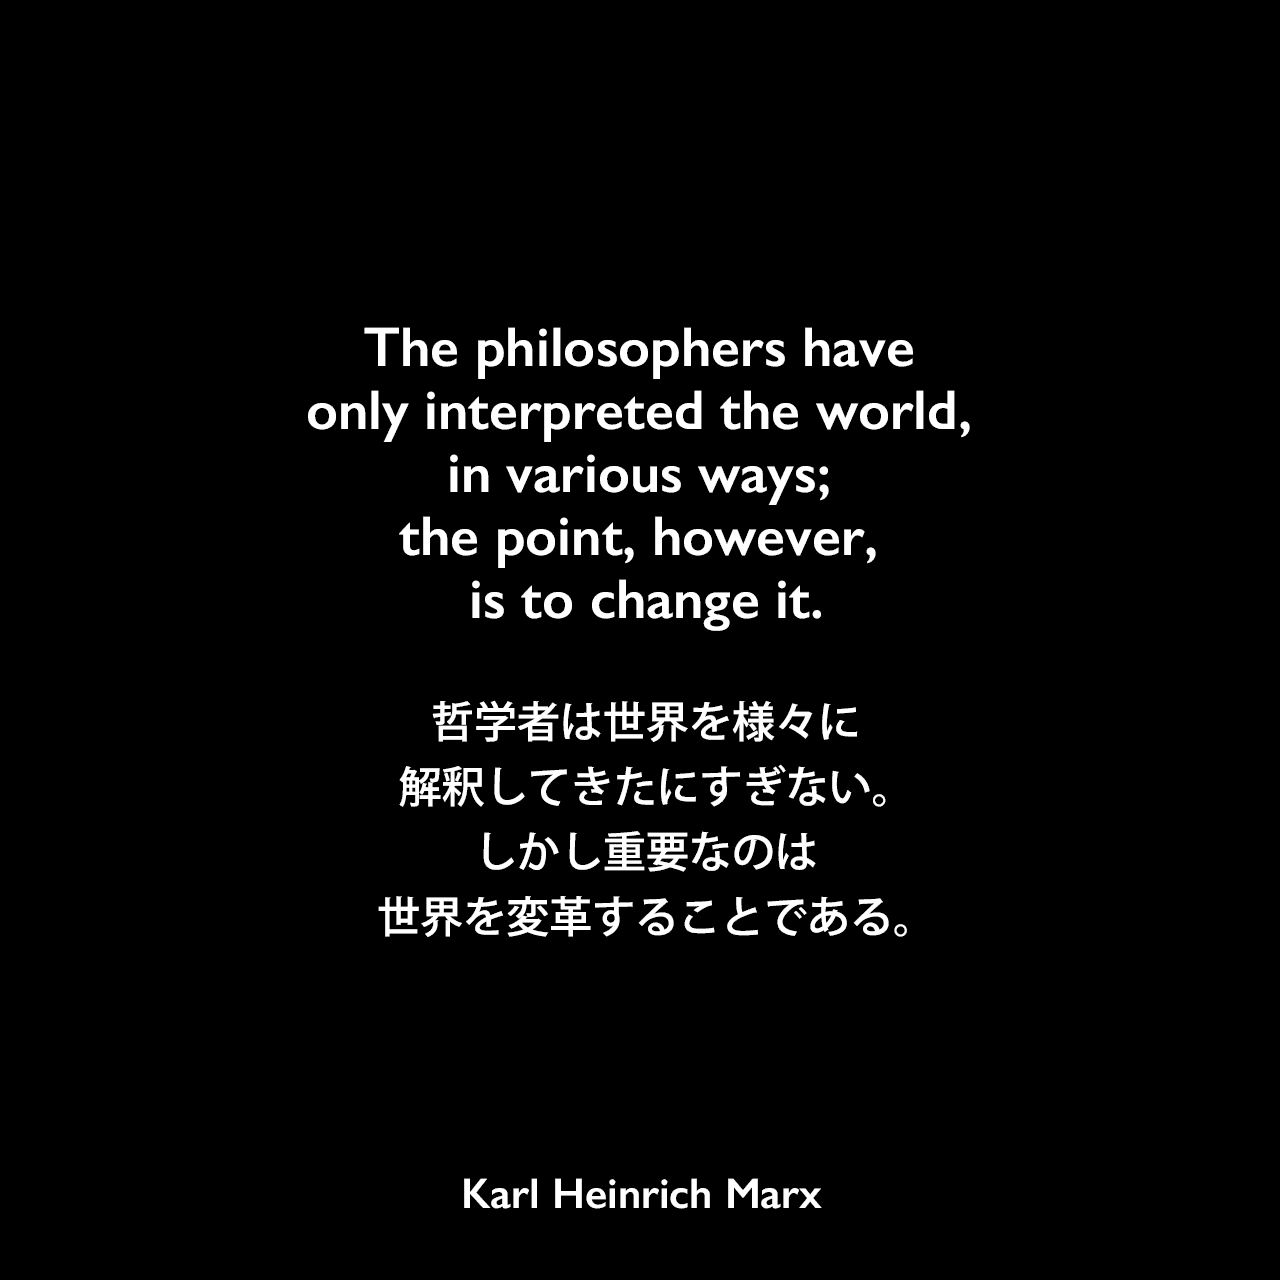 The philosophers have only interpreted the world, in various ways; the point, however, is to change it.哲学者は世界を様々に解釈してきたにすぎない。しかし重要なのは世界を変革することである。- フォイエルバッハに関する論文よりKarl Heinrich Marx